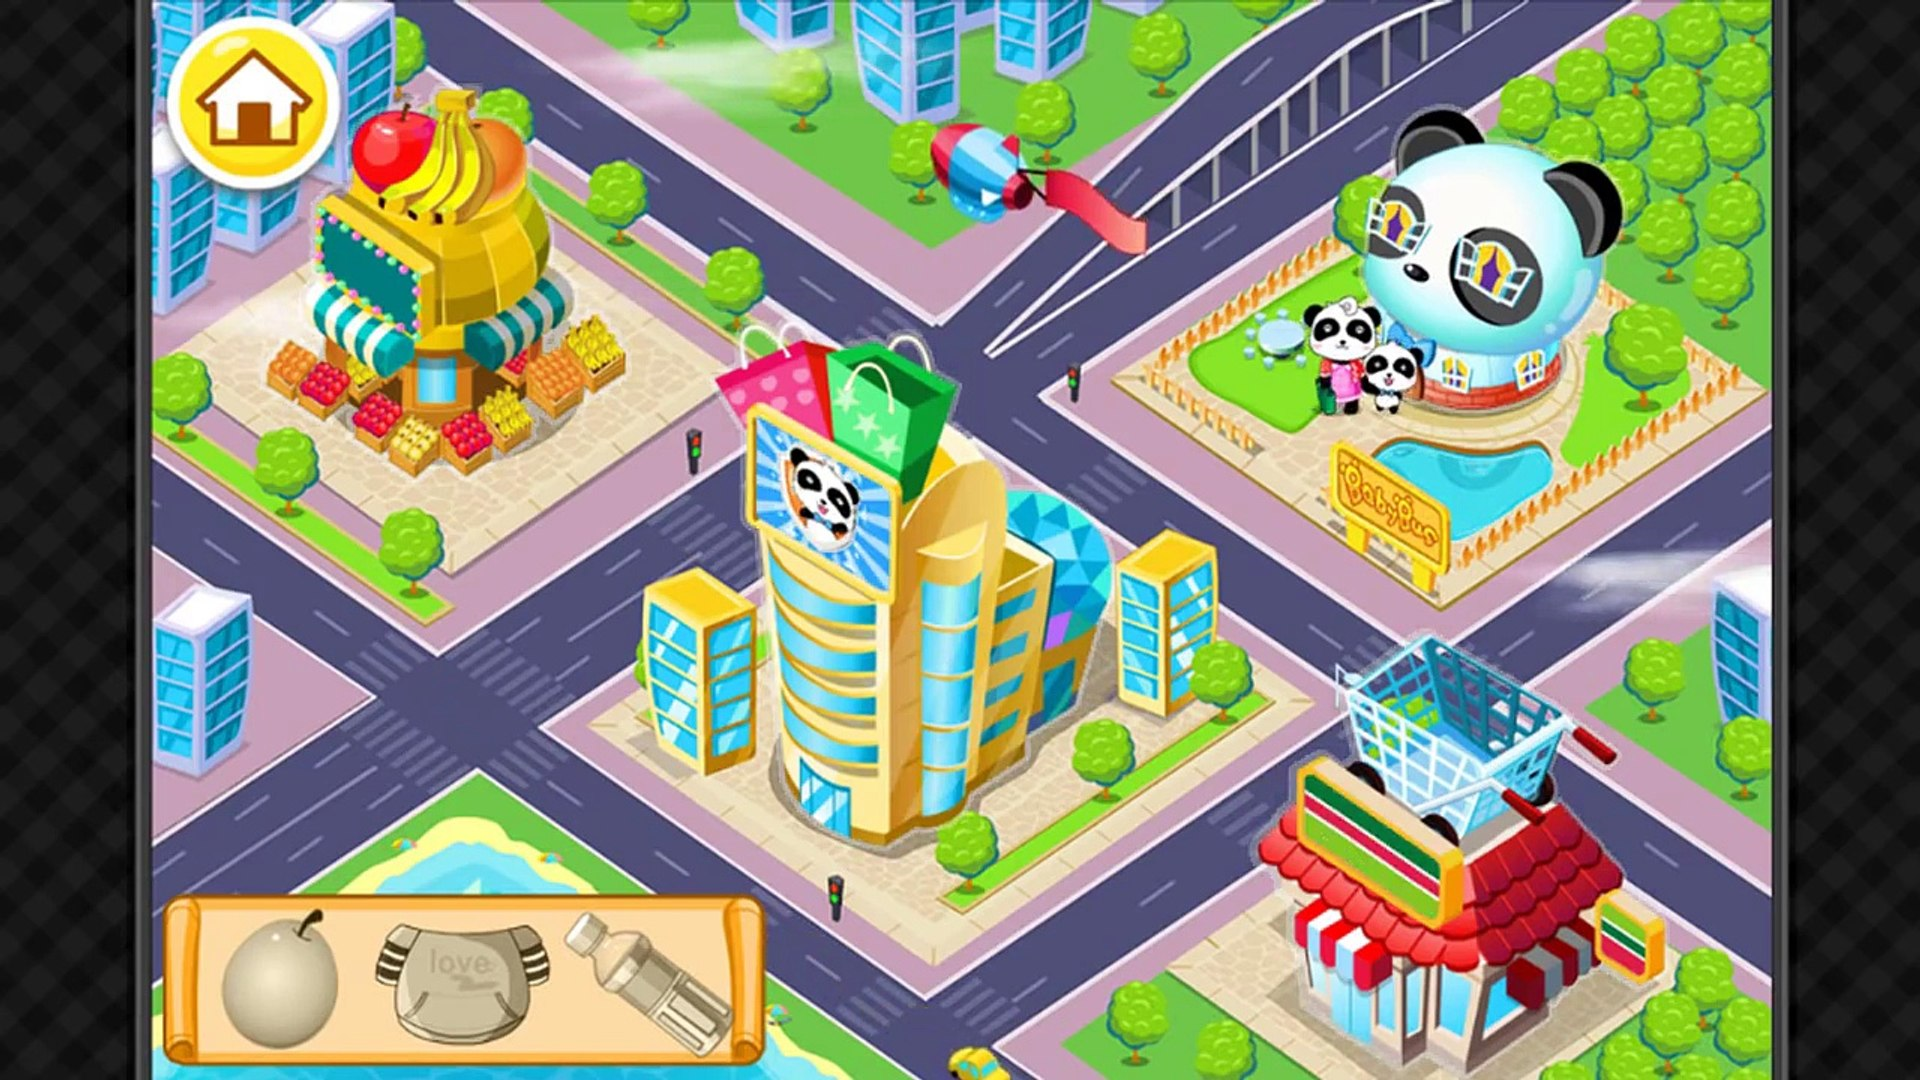 Travel Safety Tips, Kids learn attention to safety, Education Panda game for kids by Babybus